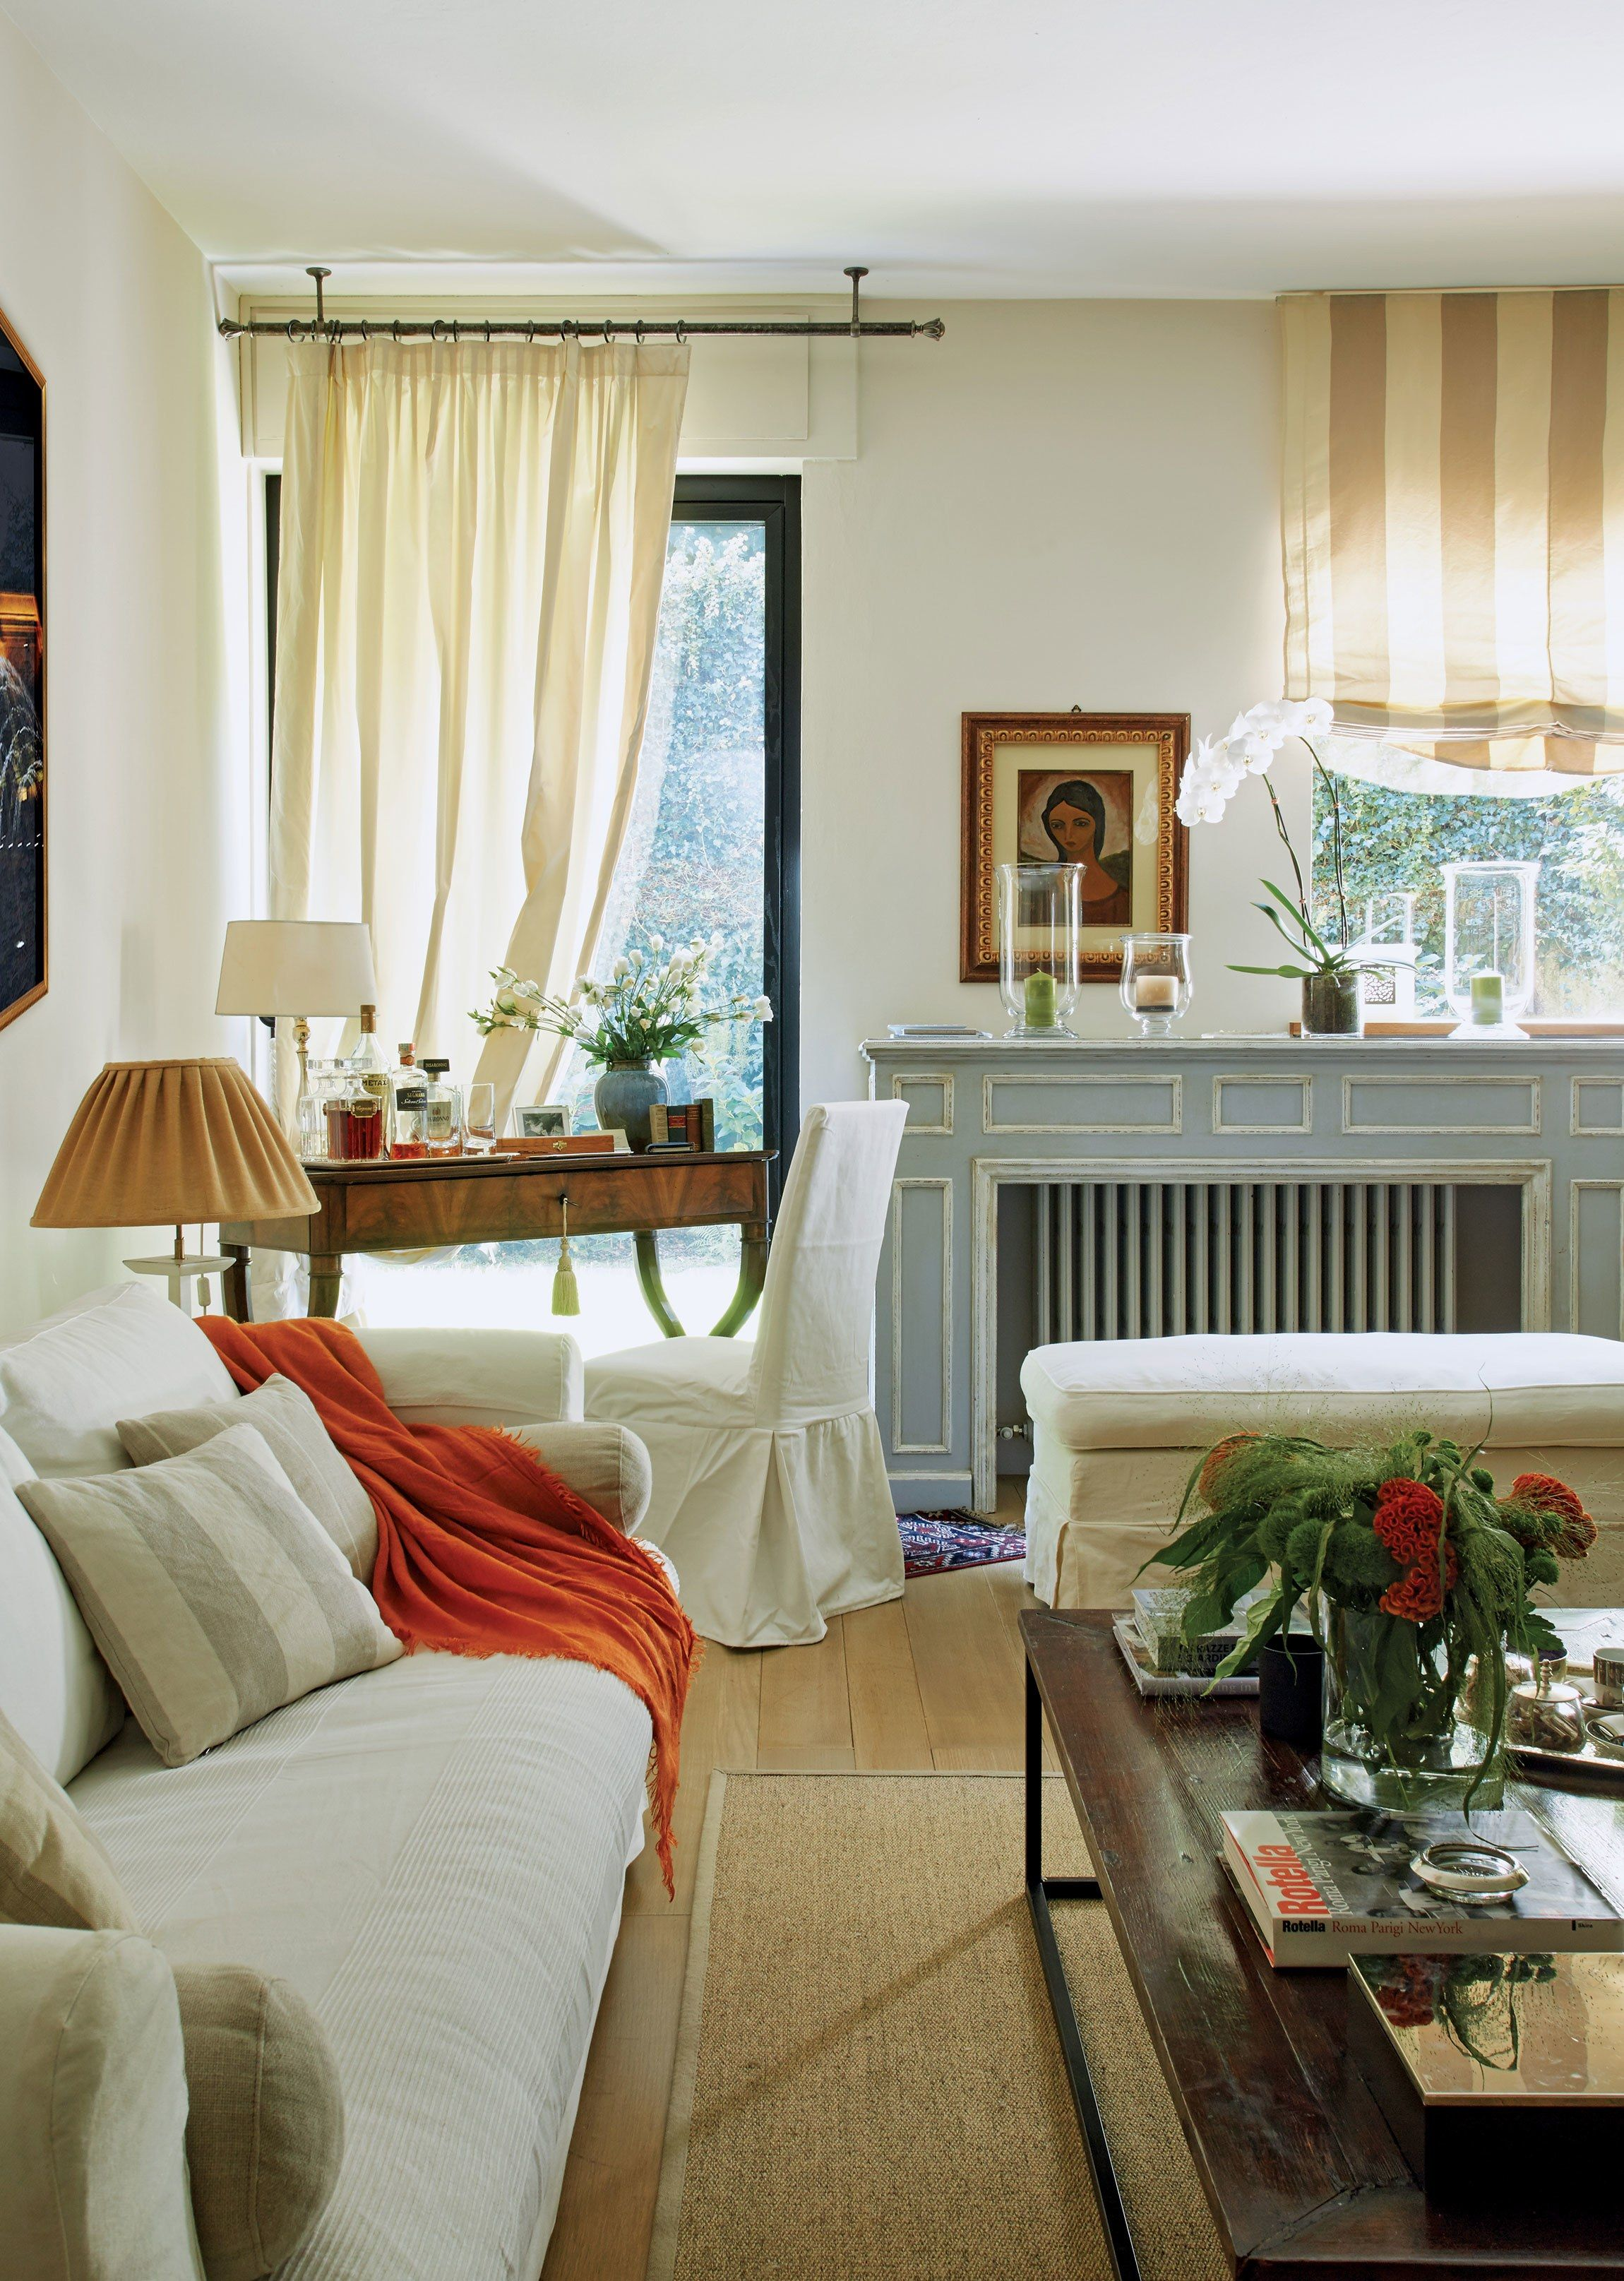 5 Homes That Get Eclectic Style Right